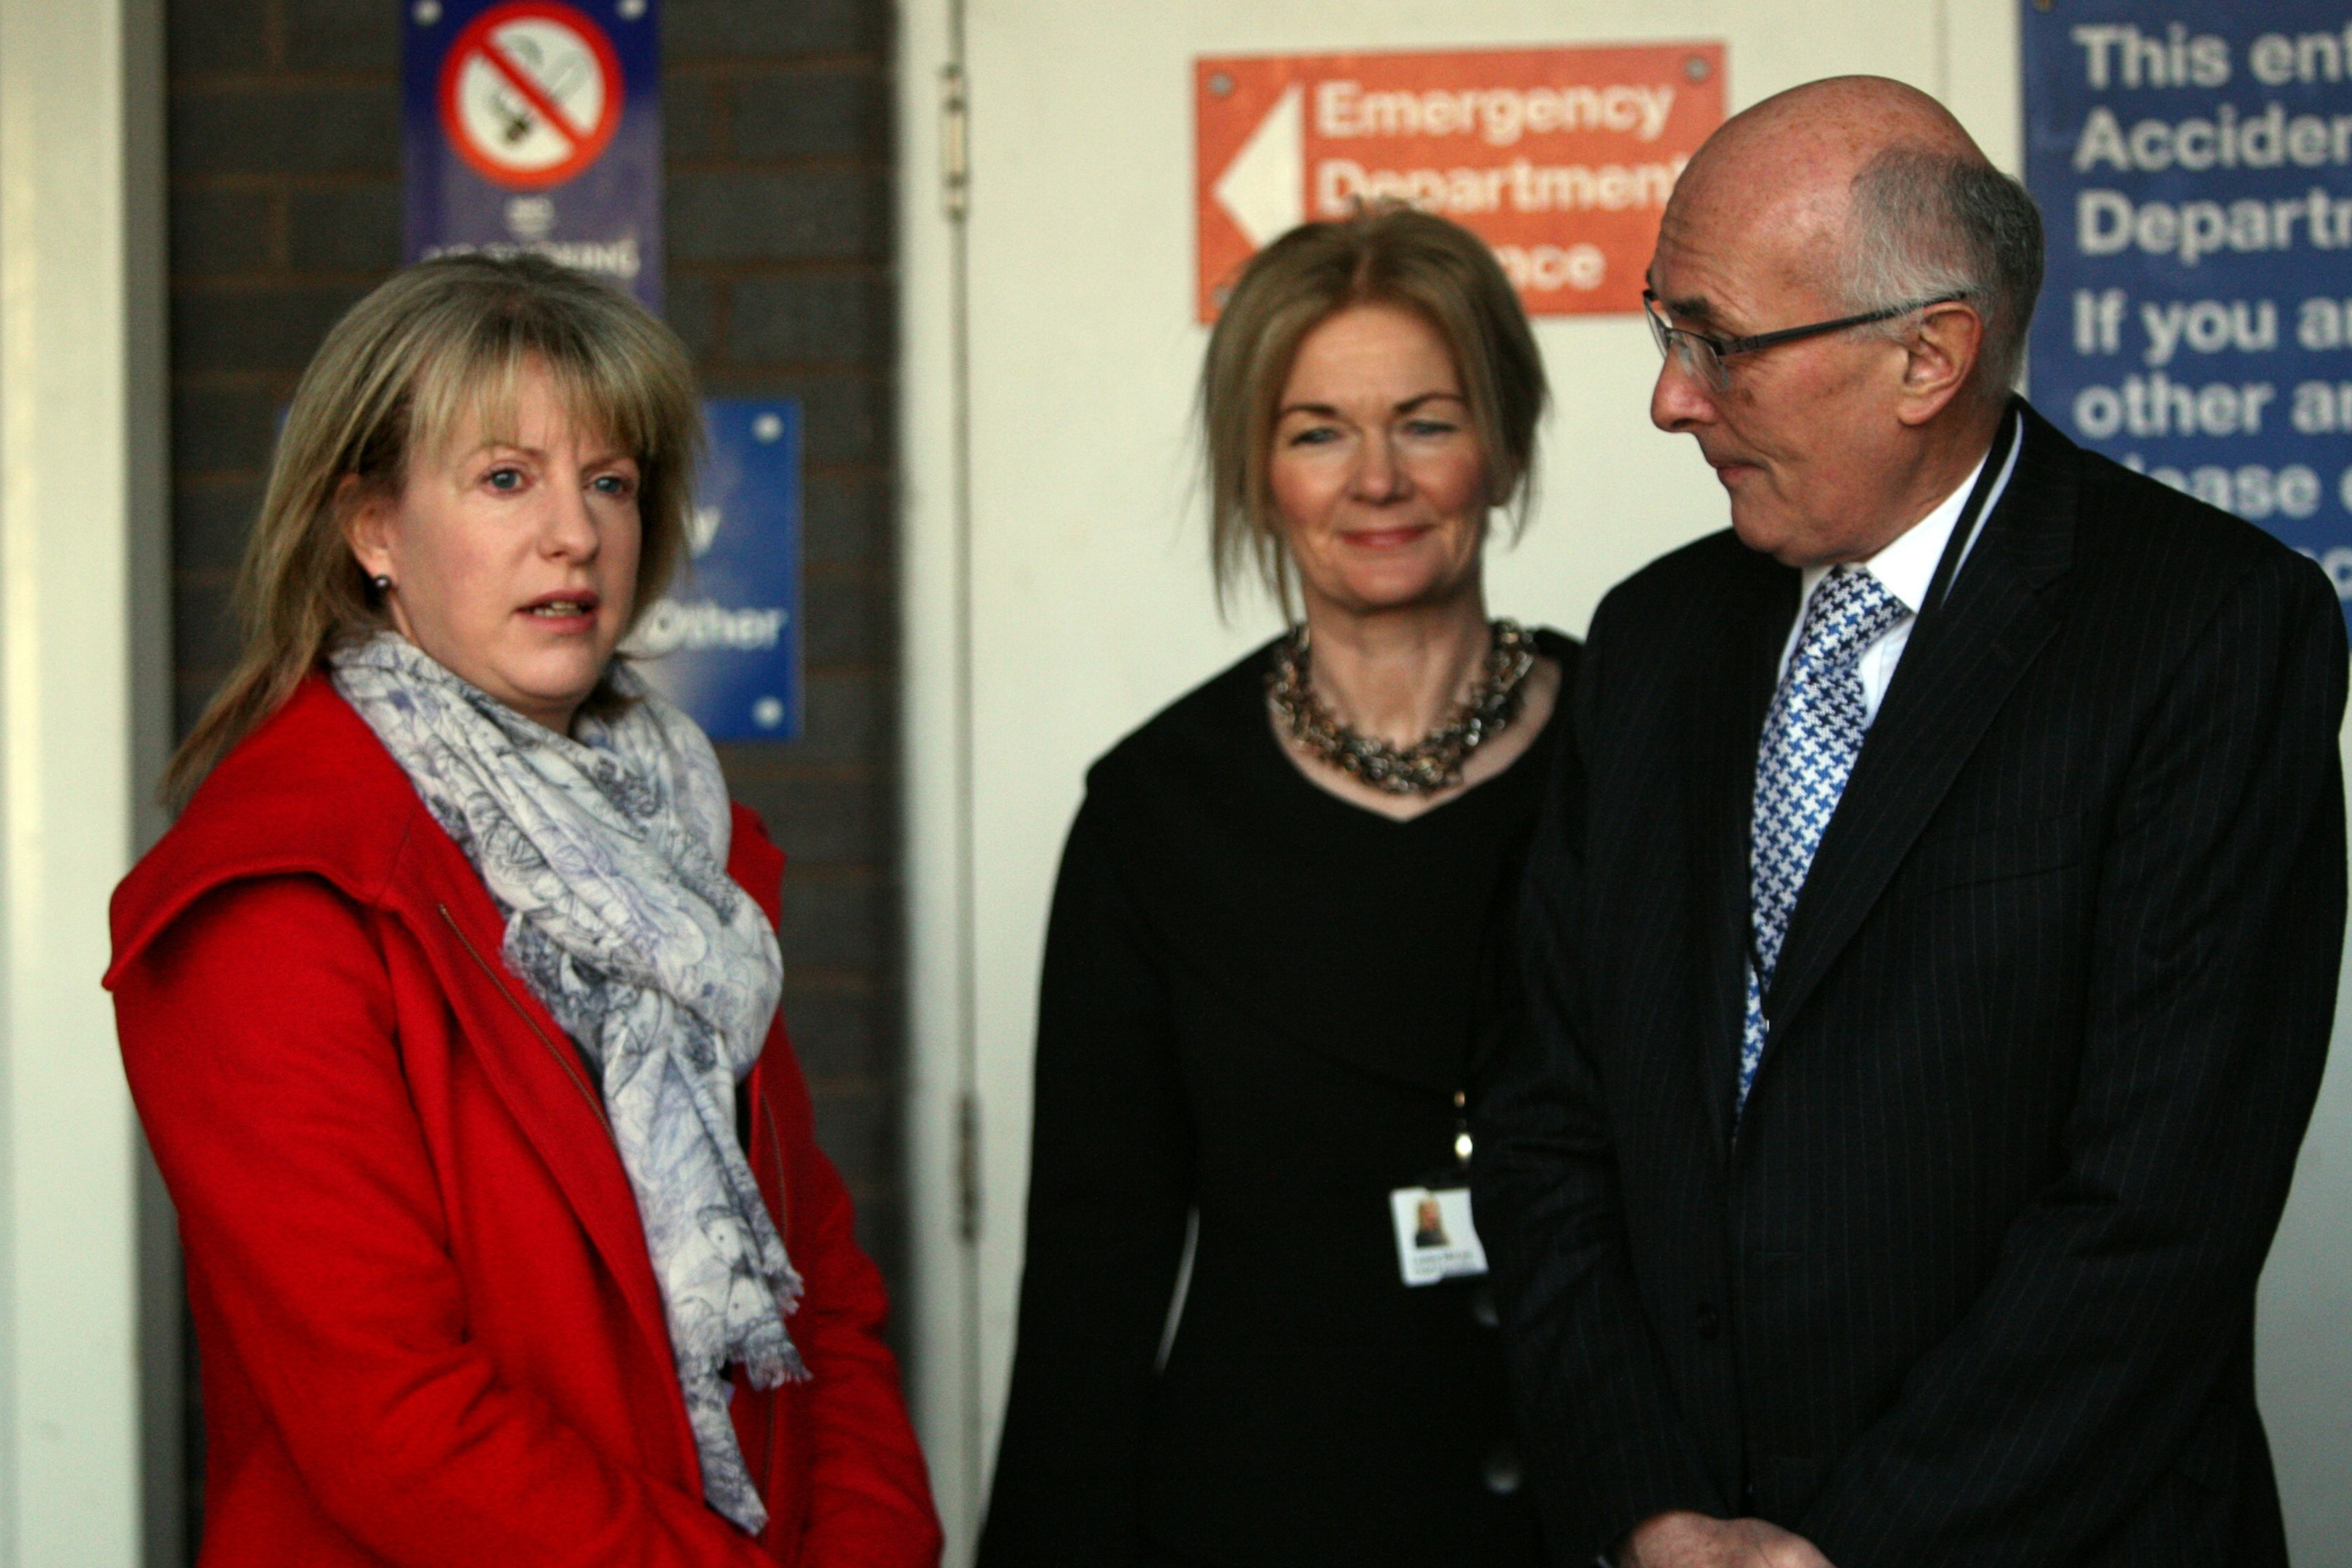 Shona Robison with NHS Tayside chief executive Lesley McLay and Professor John Connell, chairman of the Tayside NHS Board